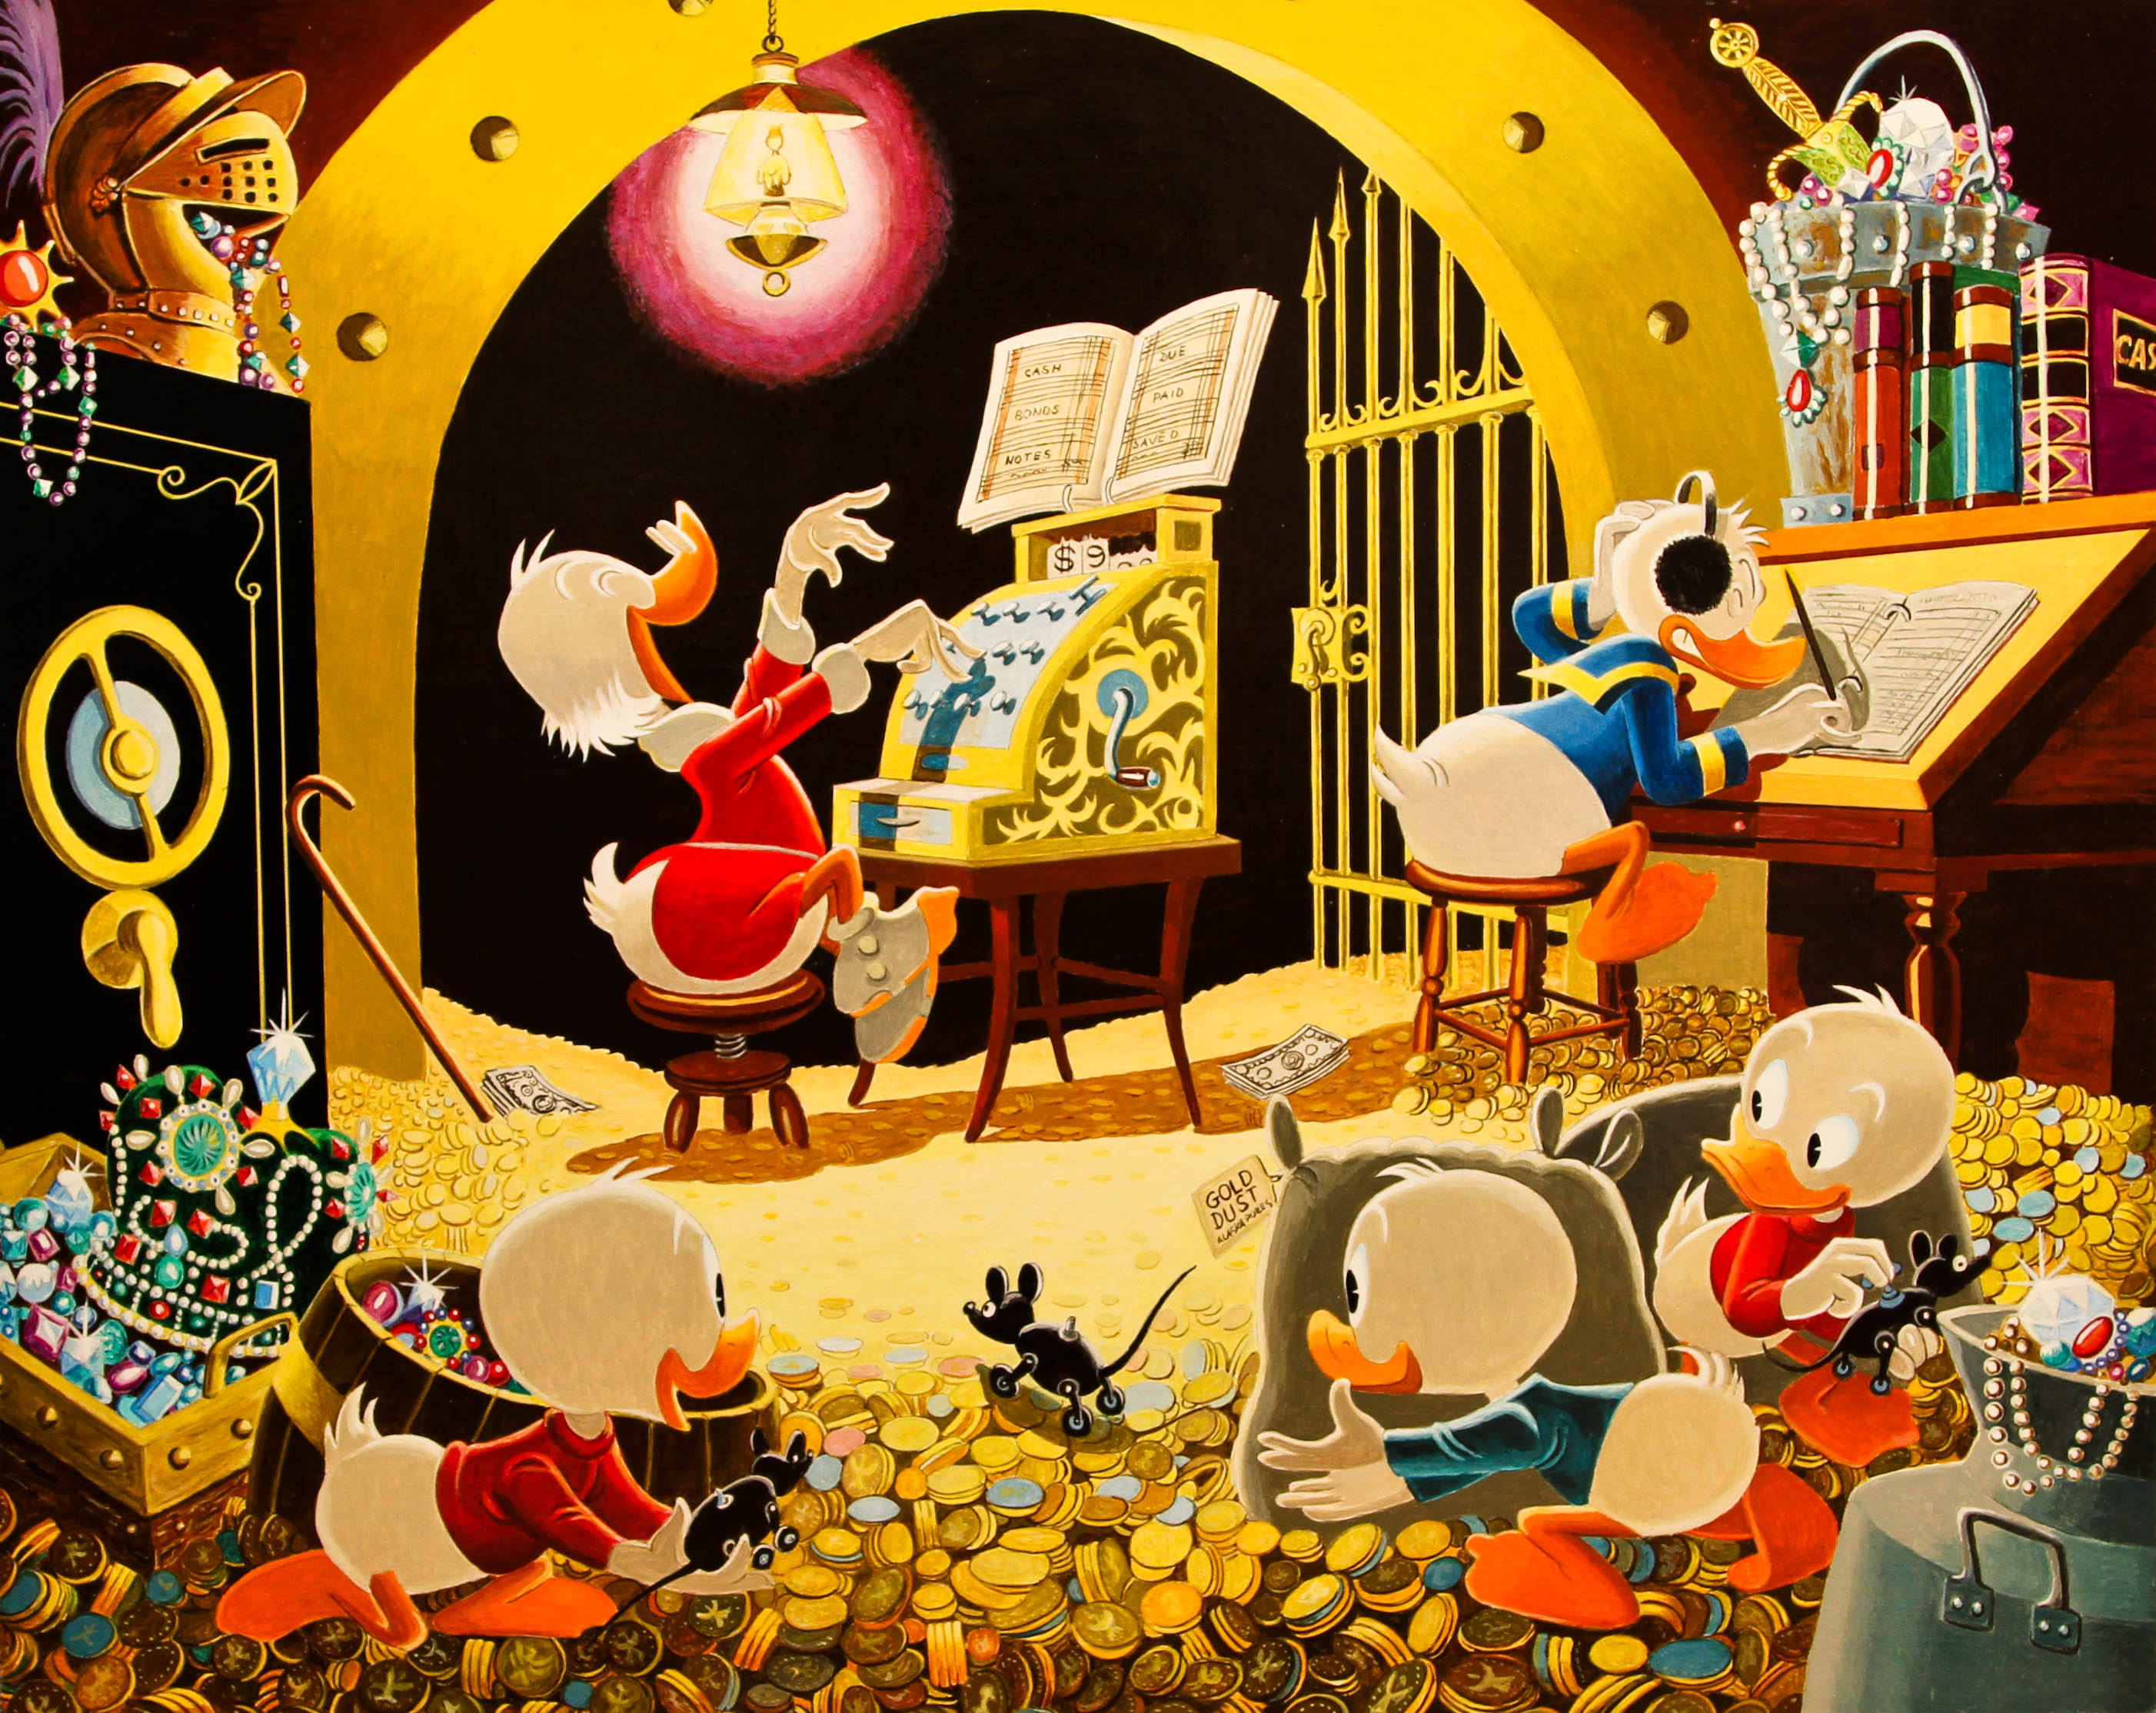 Spoiling the Concert Carl Barks/Gil